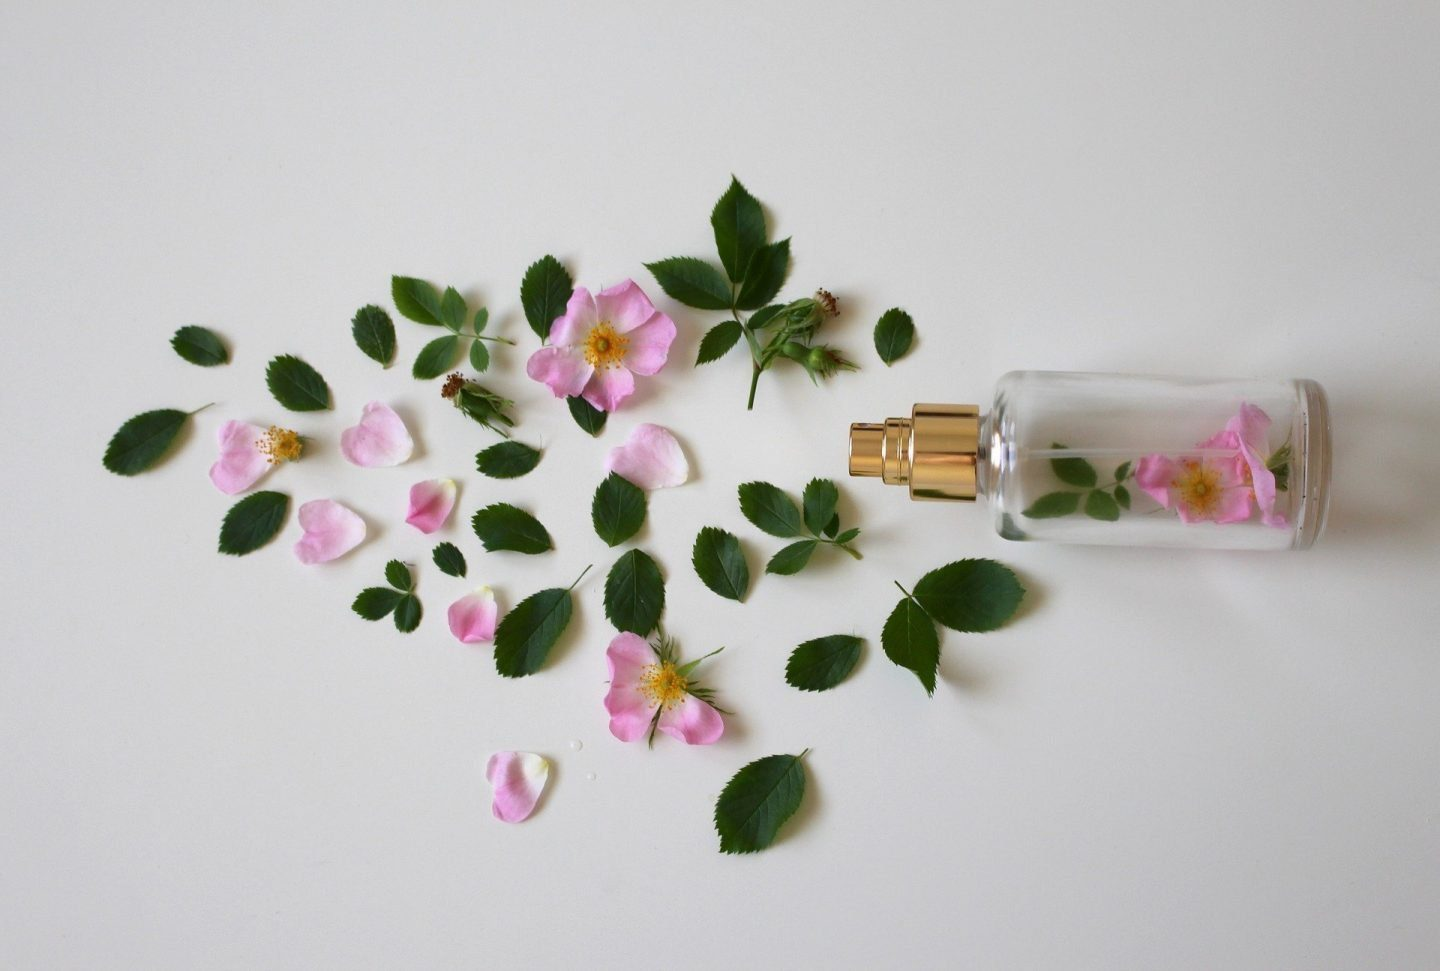 A perfume bottles lying on it's side with flower petals and leaves inside it and on the surrounding area